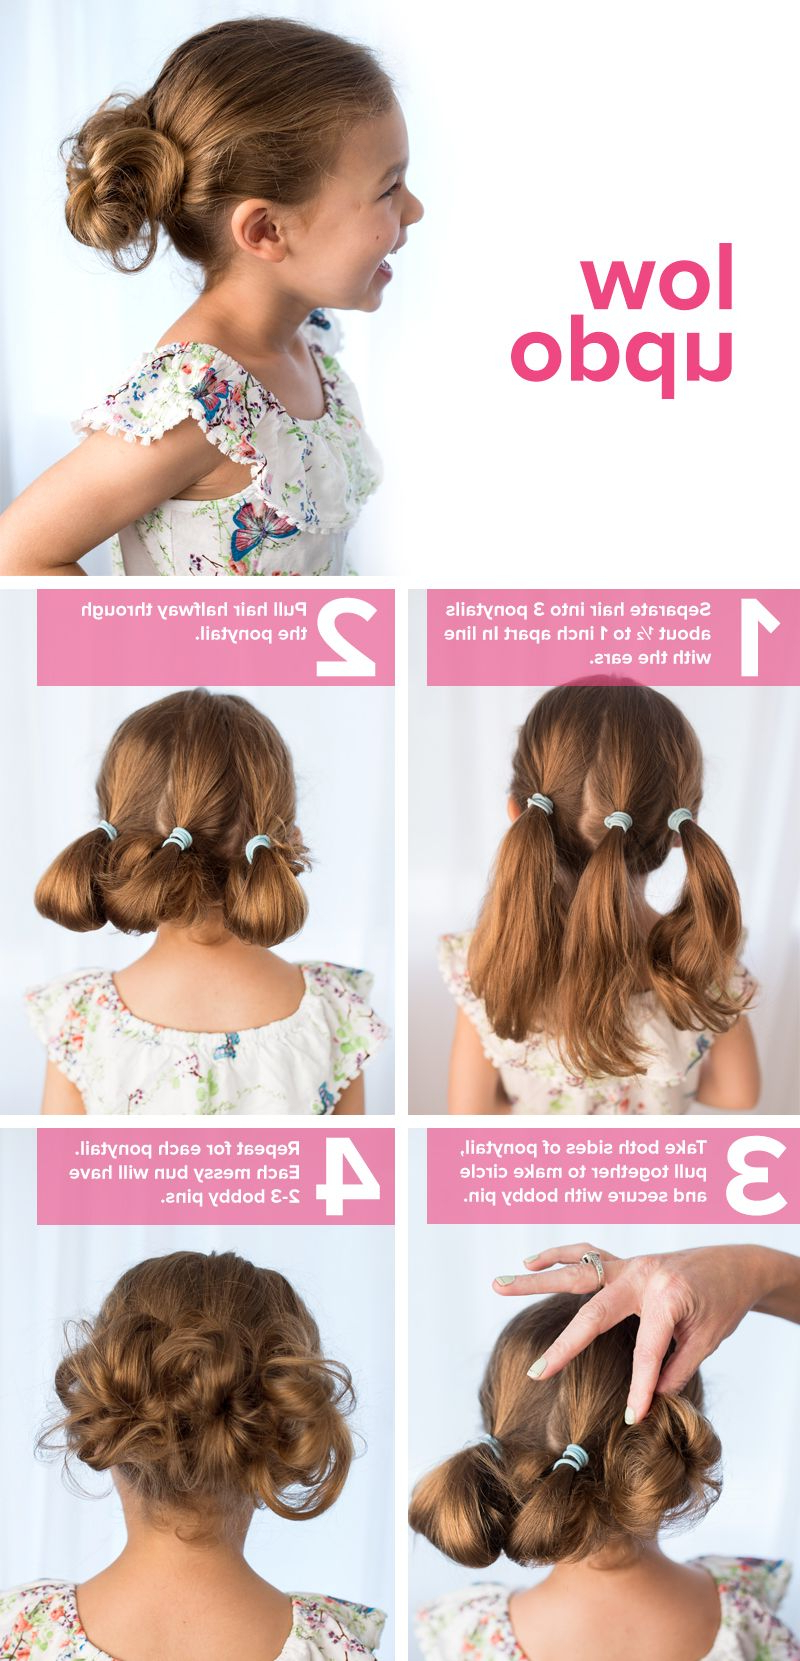 5 Fast, Easy, Cute Hairstyles For Girls In 2018 | Back To School With Cute Hairstyles For Girls With Short Hair (View 3 of 25)